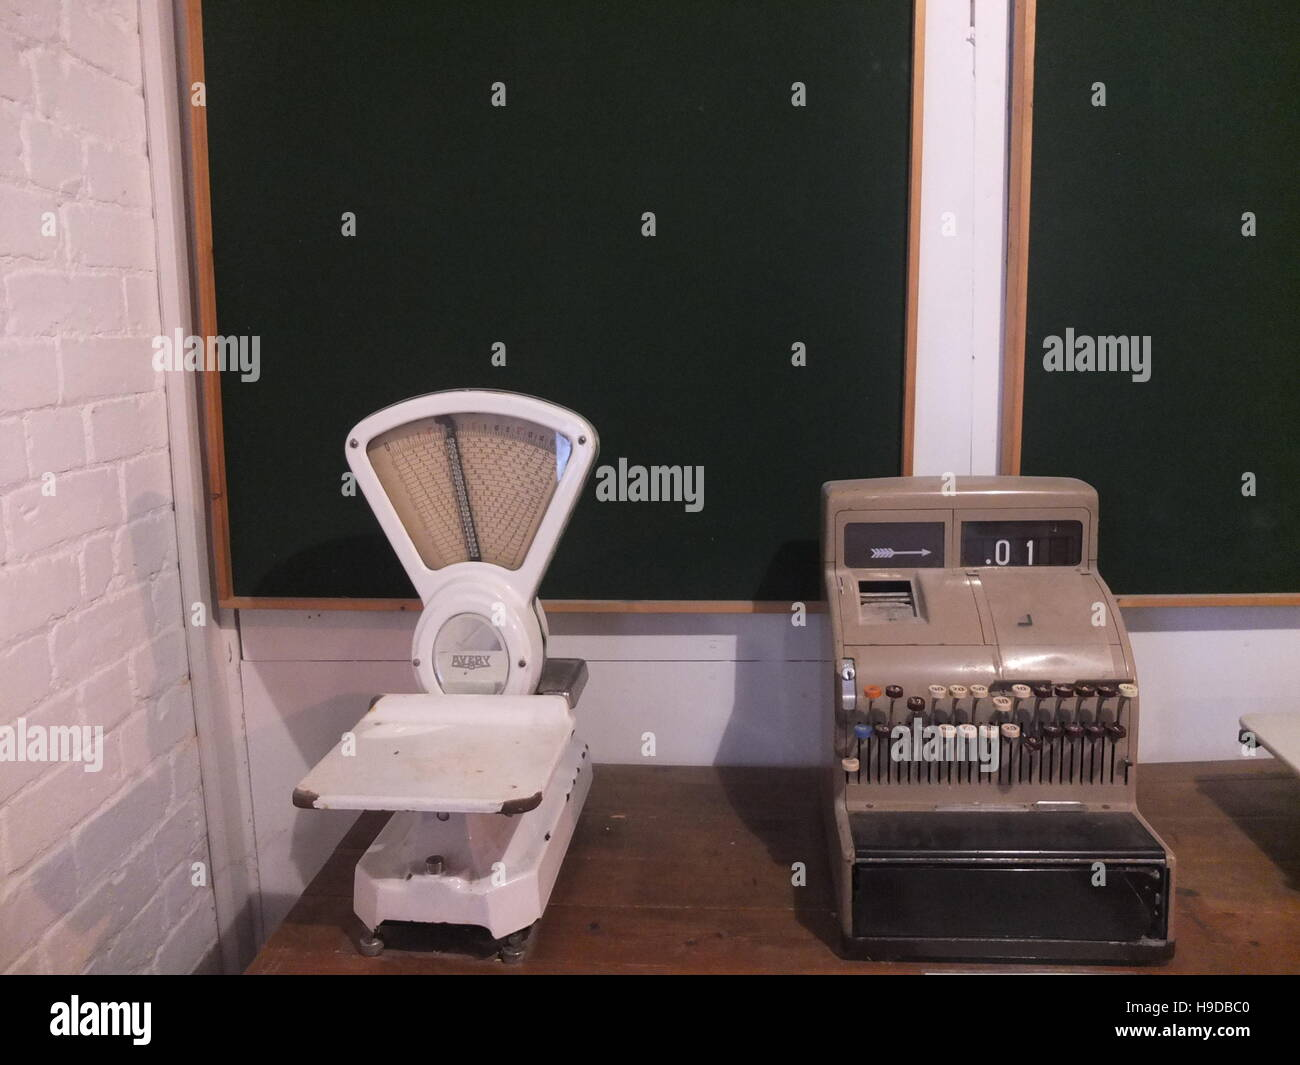 An old-fashioned cash register and set of weighing scales - Stock Image